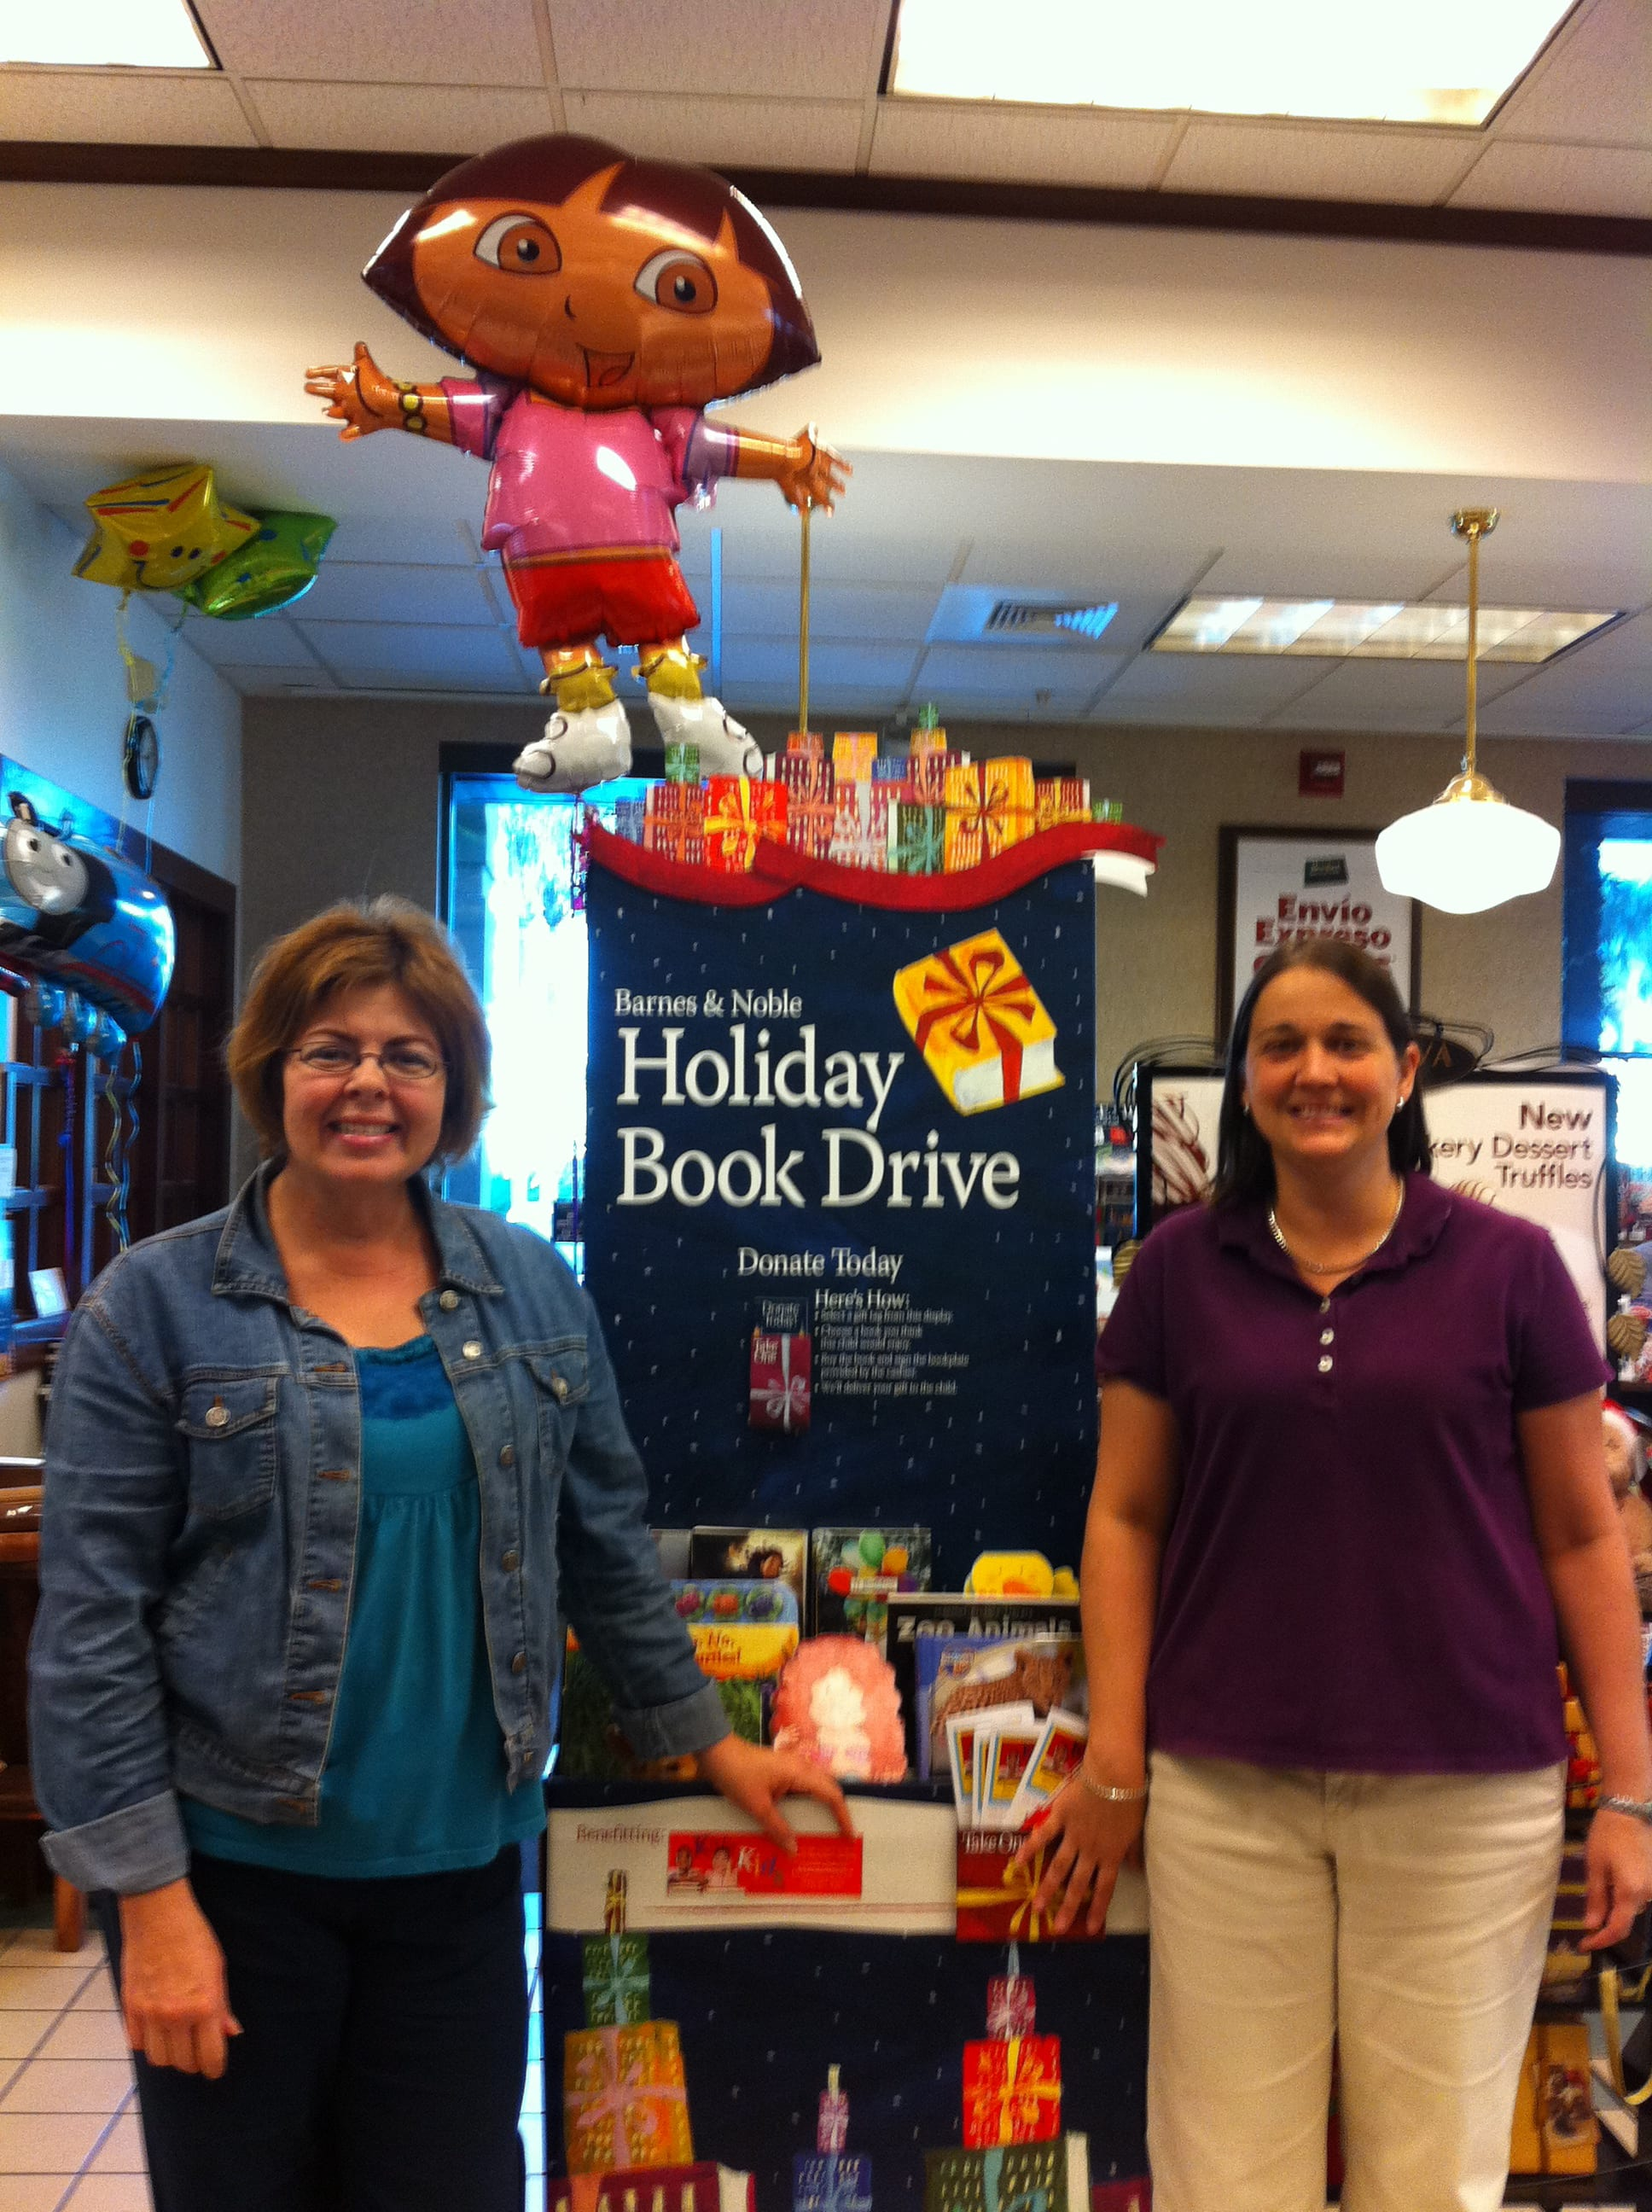 Holiday Book Drive Begins at Barnes Noble Booksellers Waterside